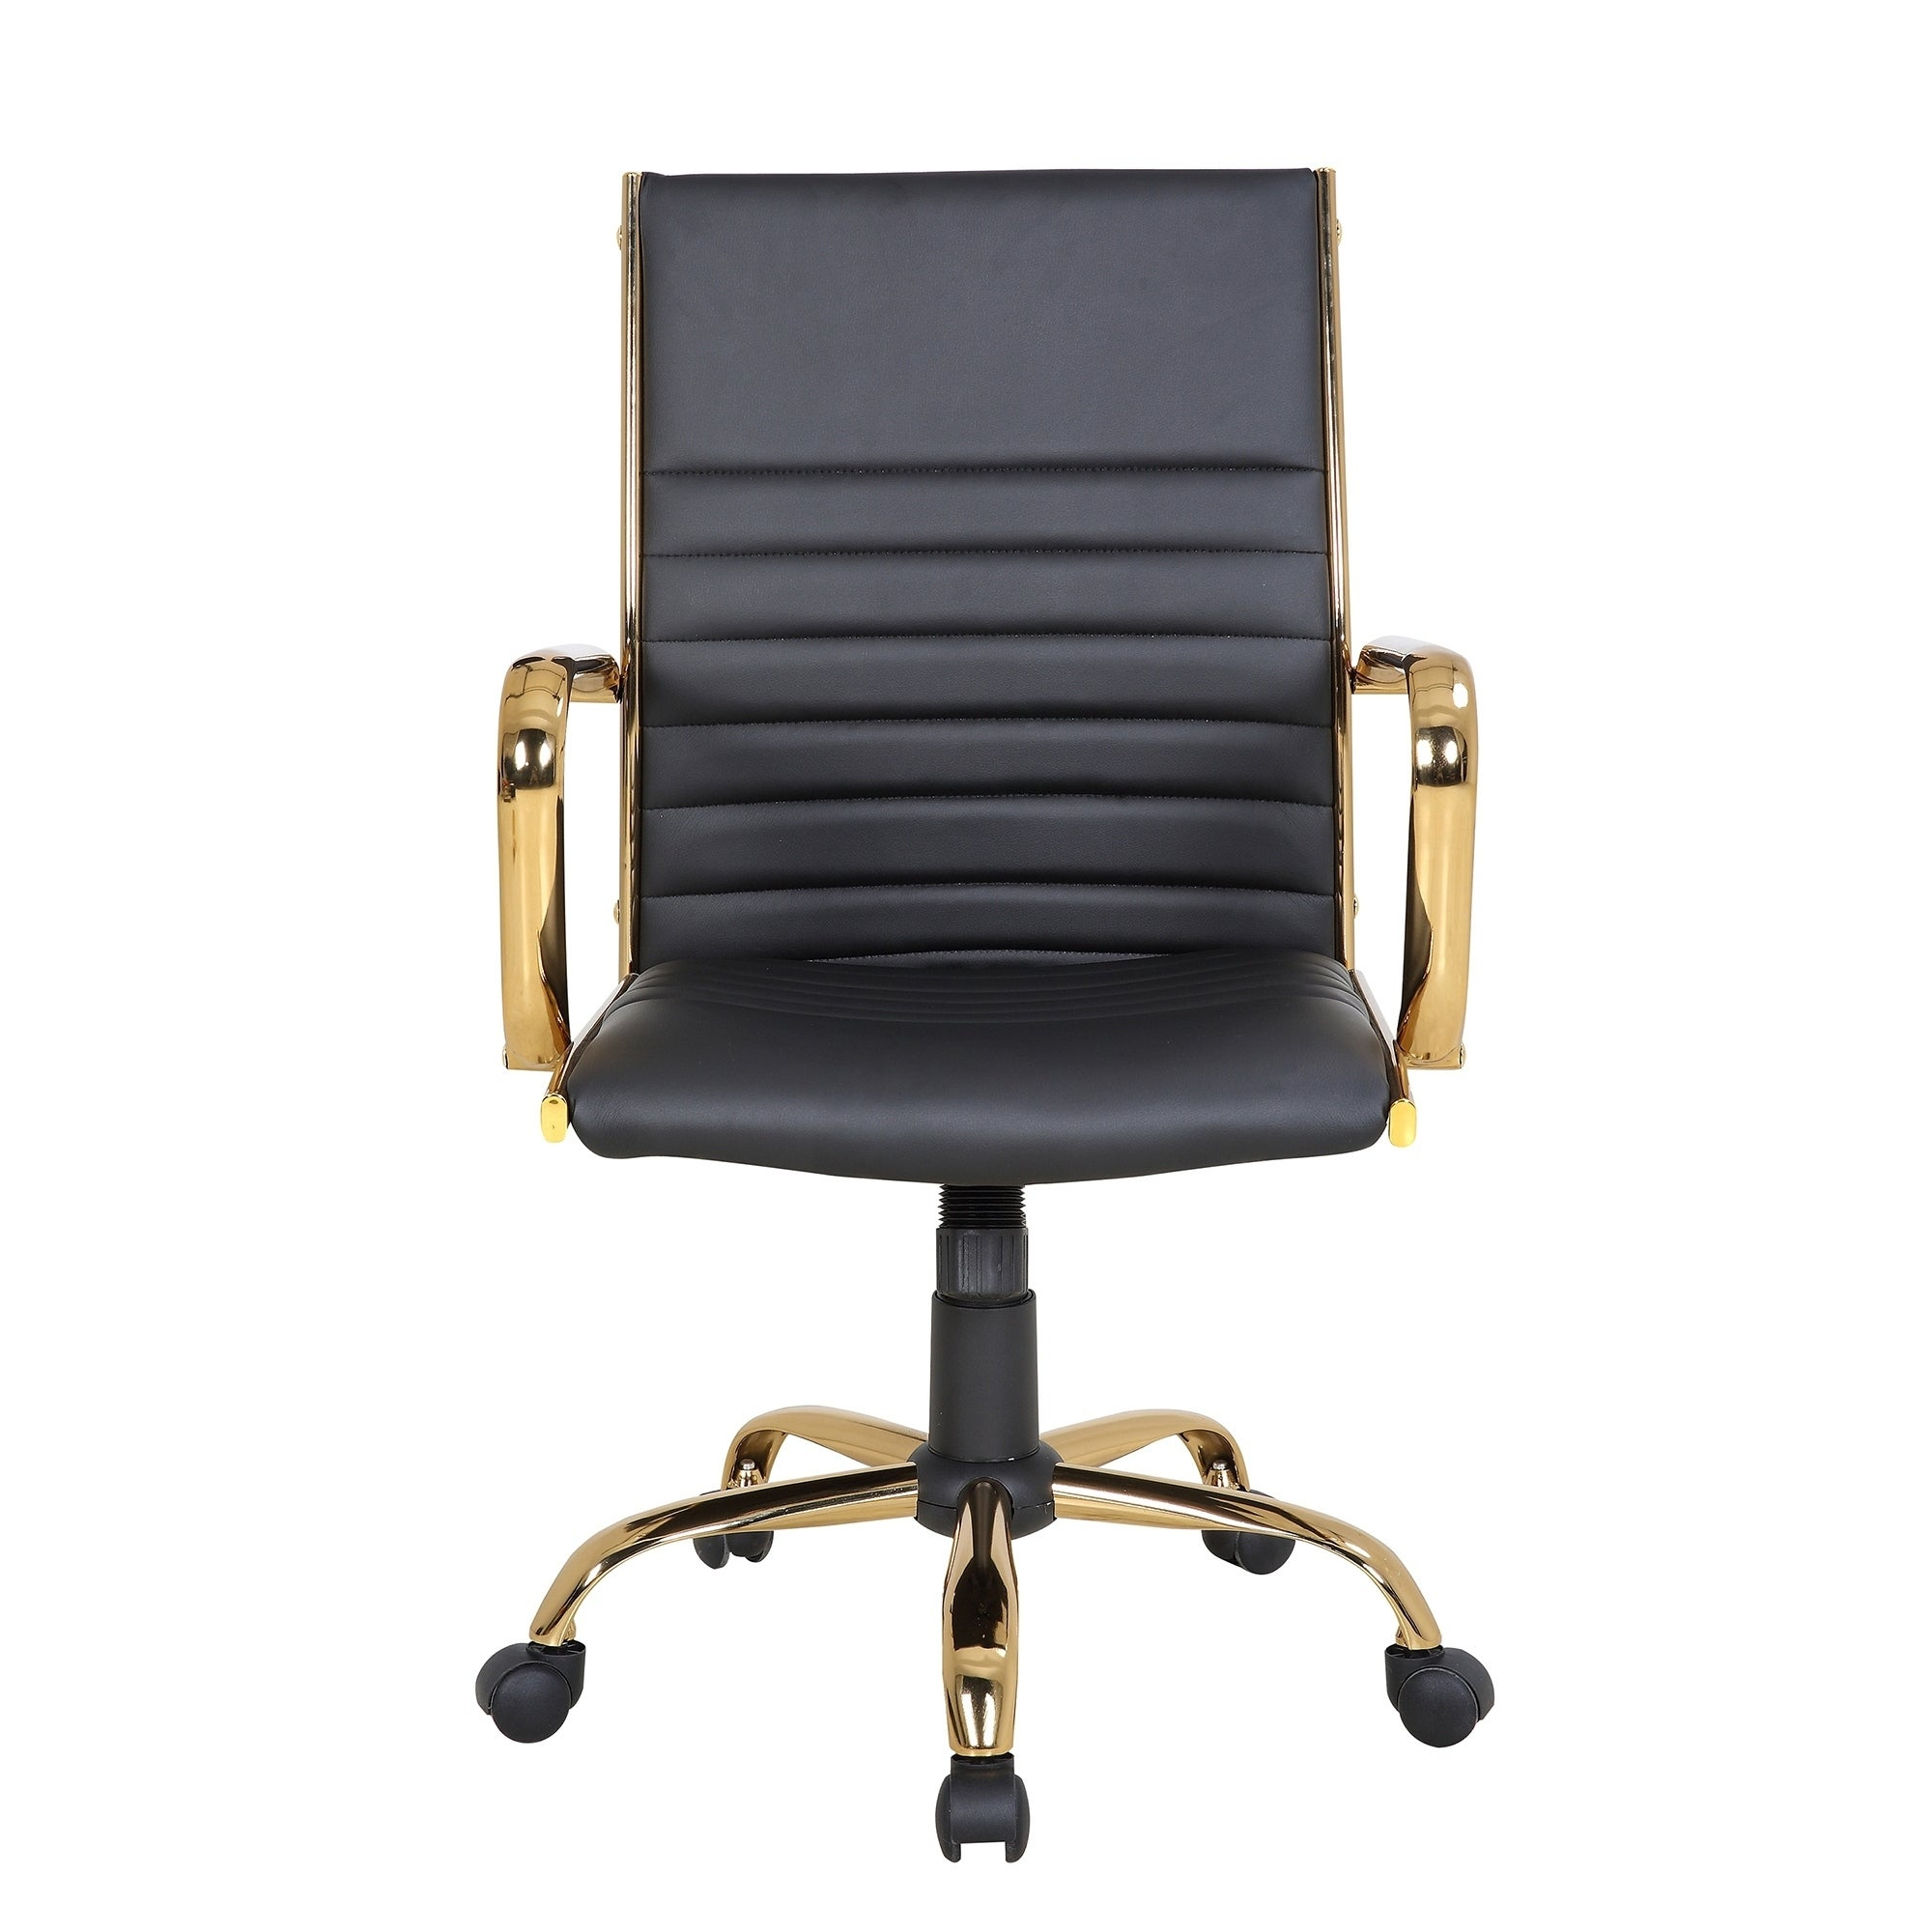 Shop Master Contemporary Faux Leather Office Chair with Gold Metal by LumiSource - Free Shipping Today - Overstock.com - 22466500  sc 1 st  Overstock.com & Shop Master Contemporary Faux Leather Office Chair with Gold Metal ...